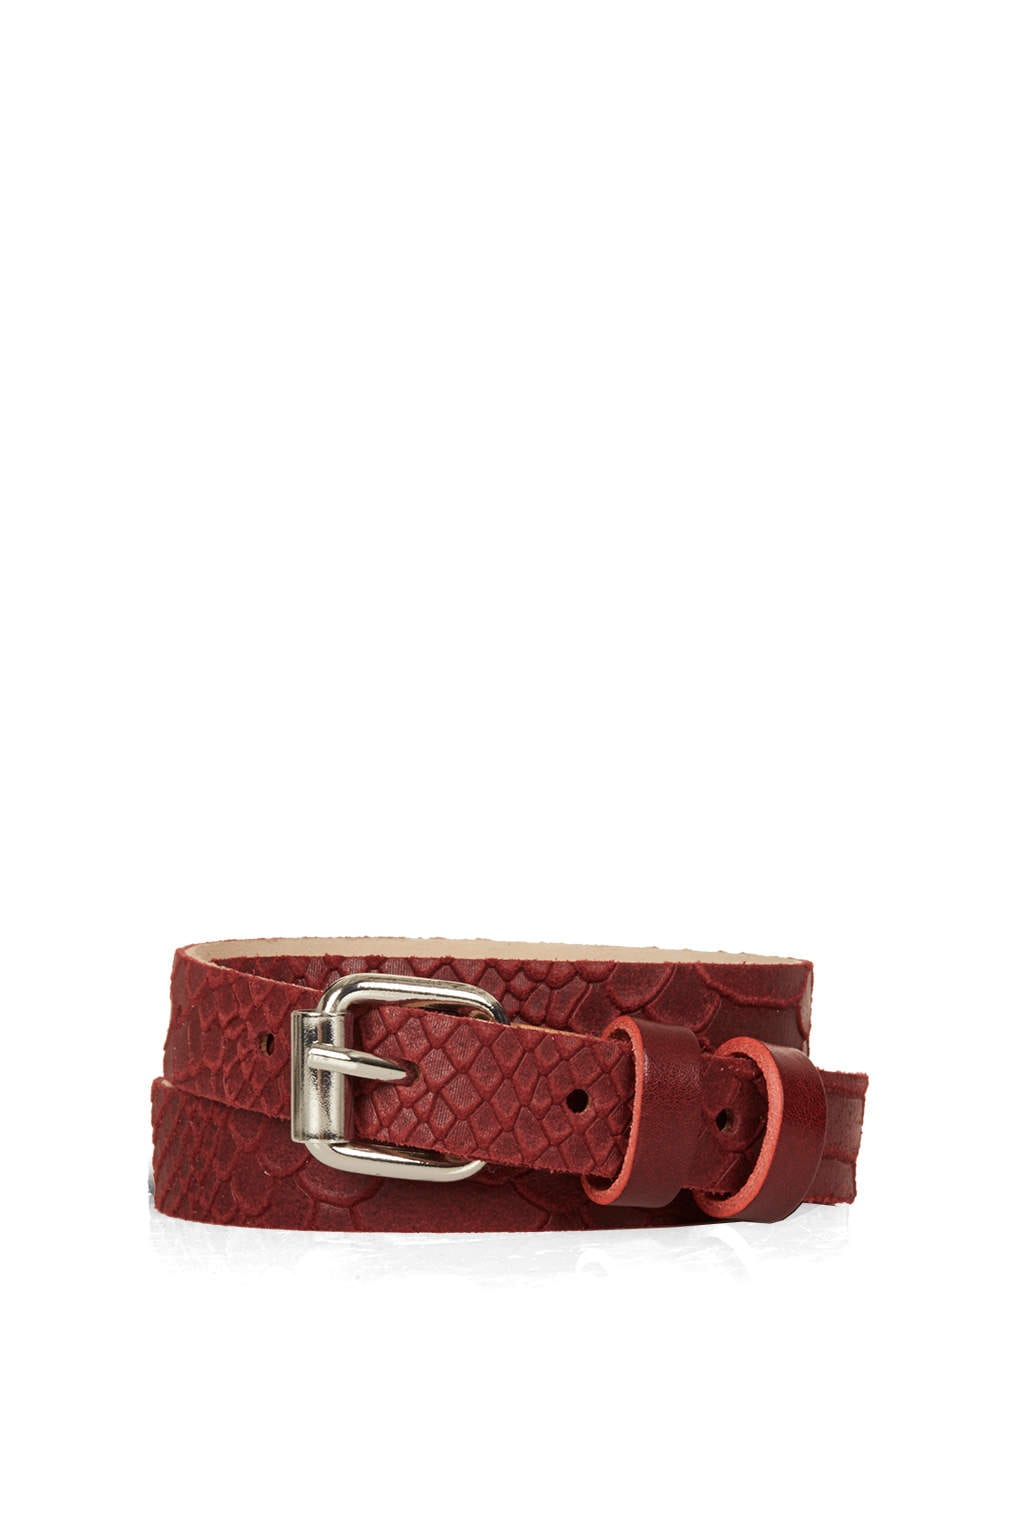 Animal Printed Waist belts for women